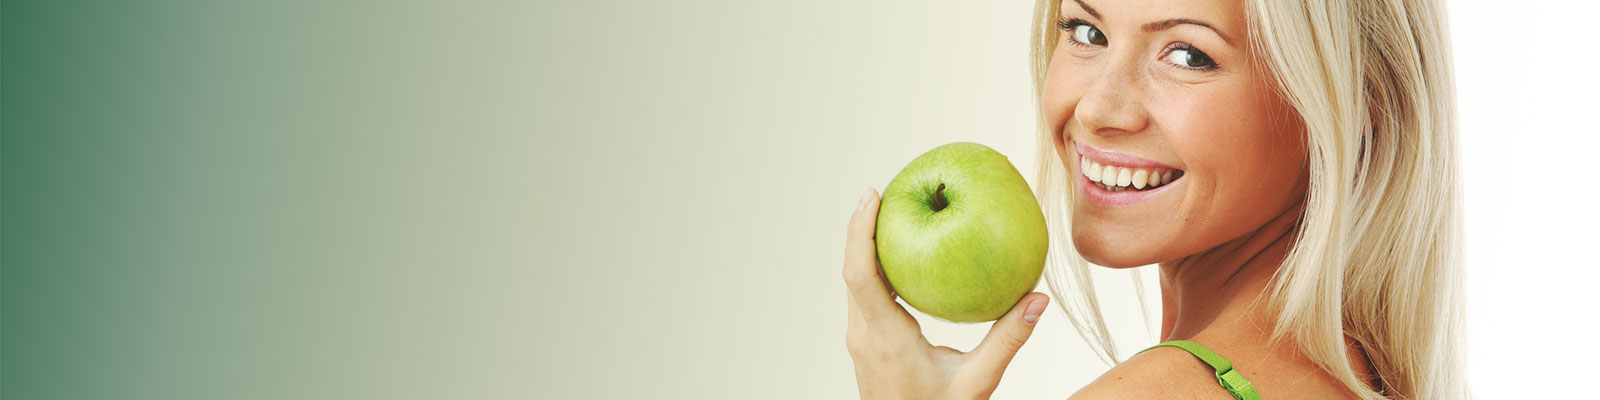 Woman eating an green apple